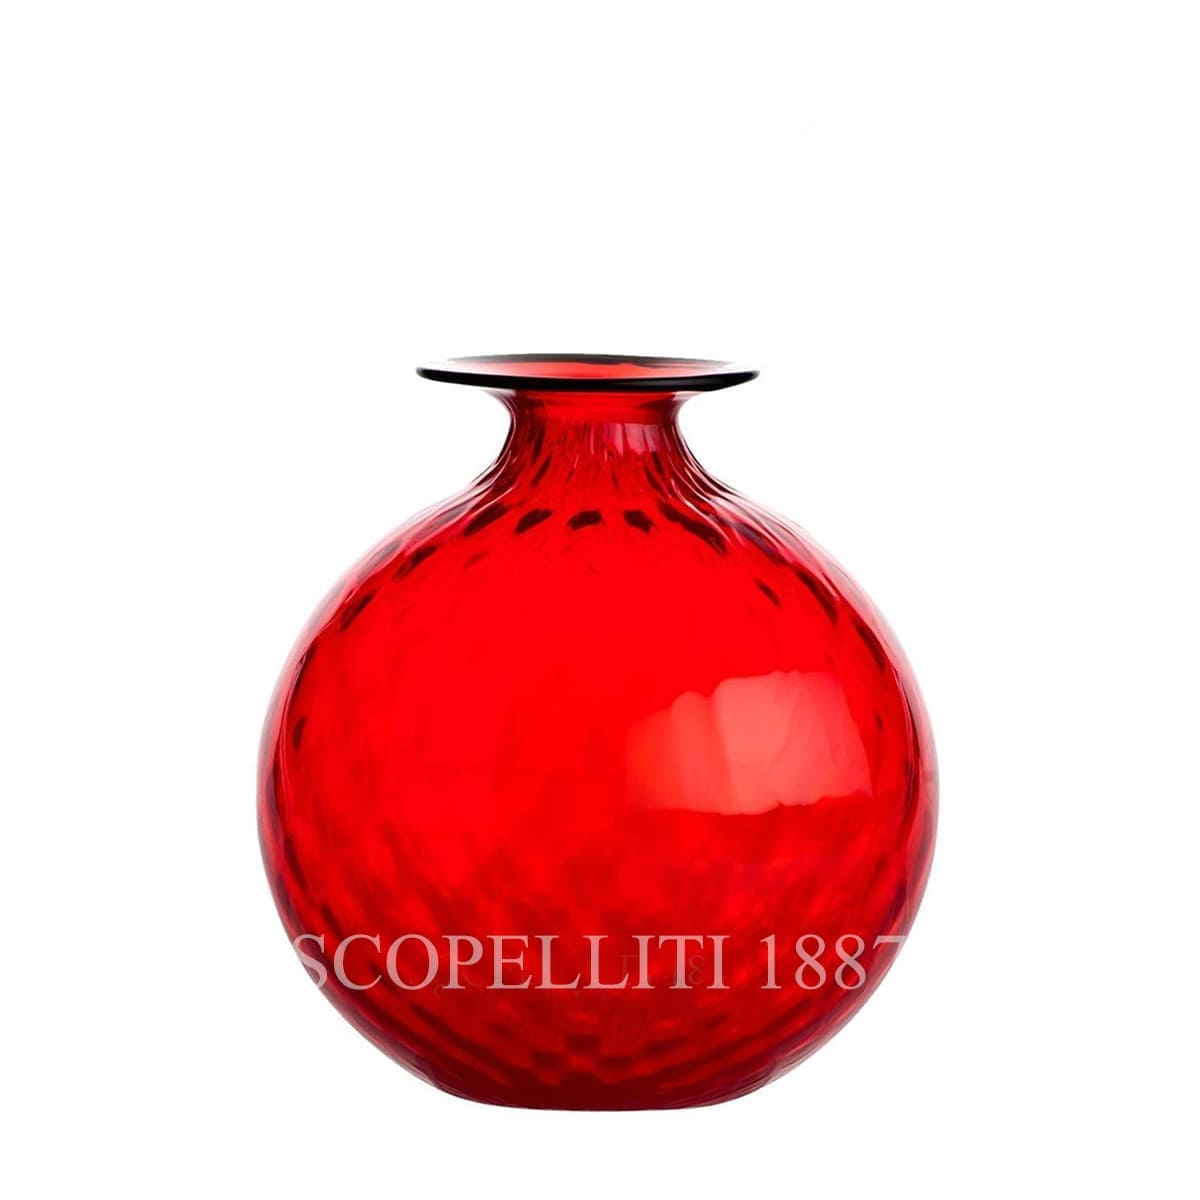 venini murano glass italian monofiore balloton vase limited edition red